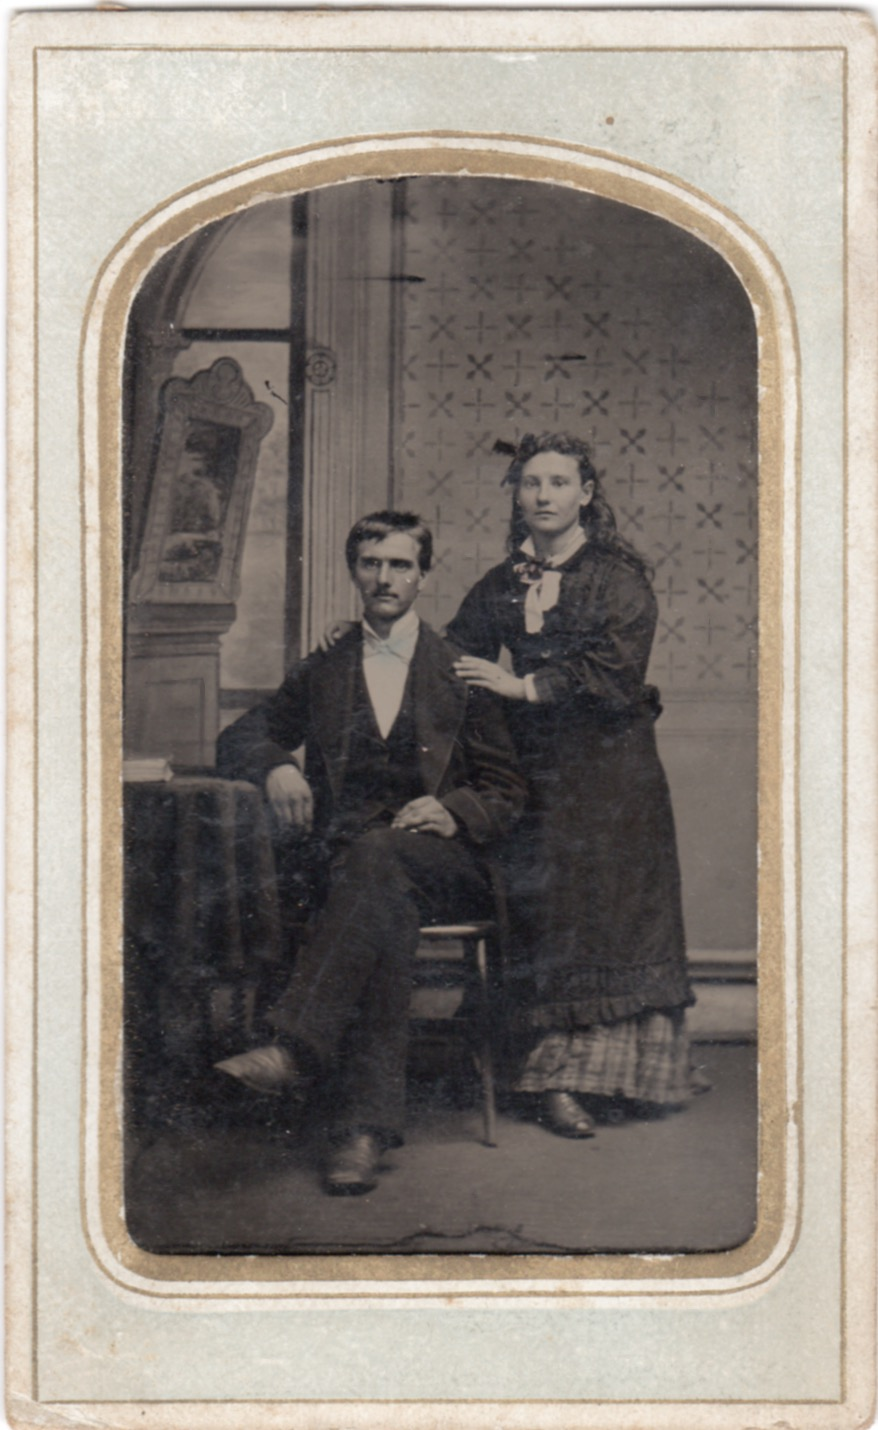 Is this James Cosltow and possibly Sarah Reynolds?This is a tintype photograph (the image is on a stiff metal plate). It is quite small, only 2-3 inches in length. It is likely the oldest photo in the entire collection .